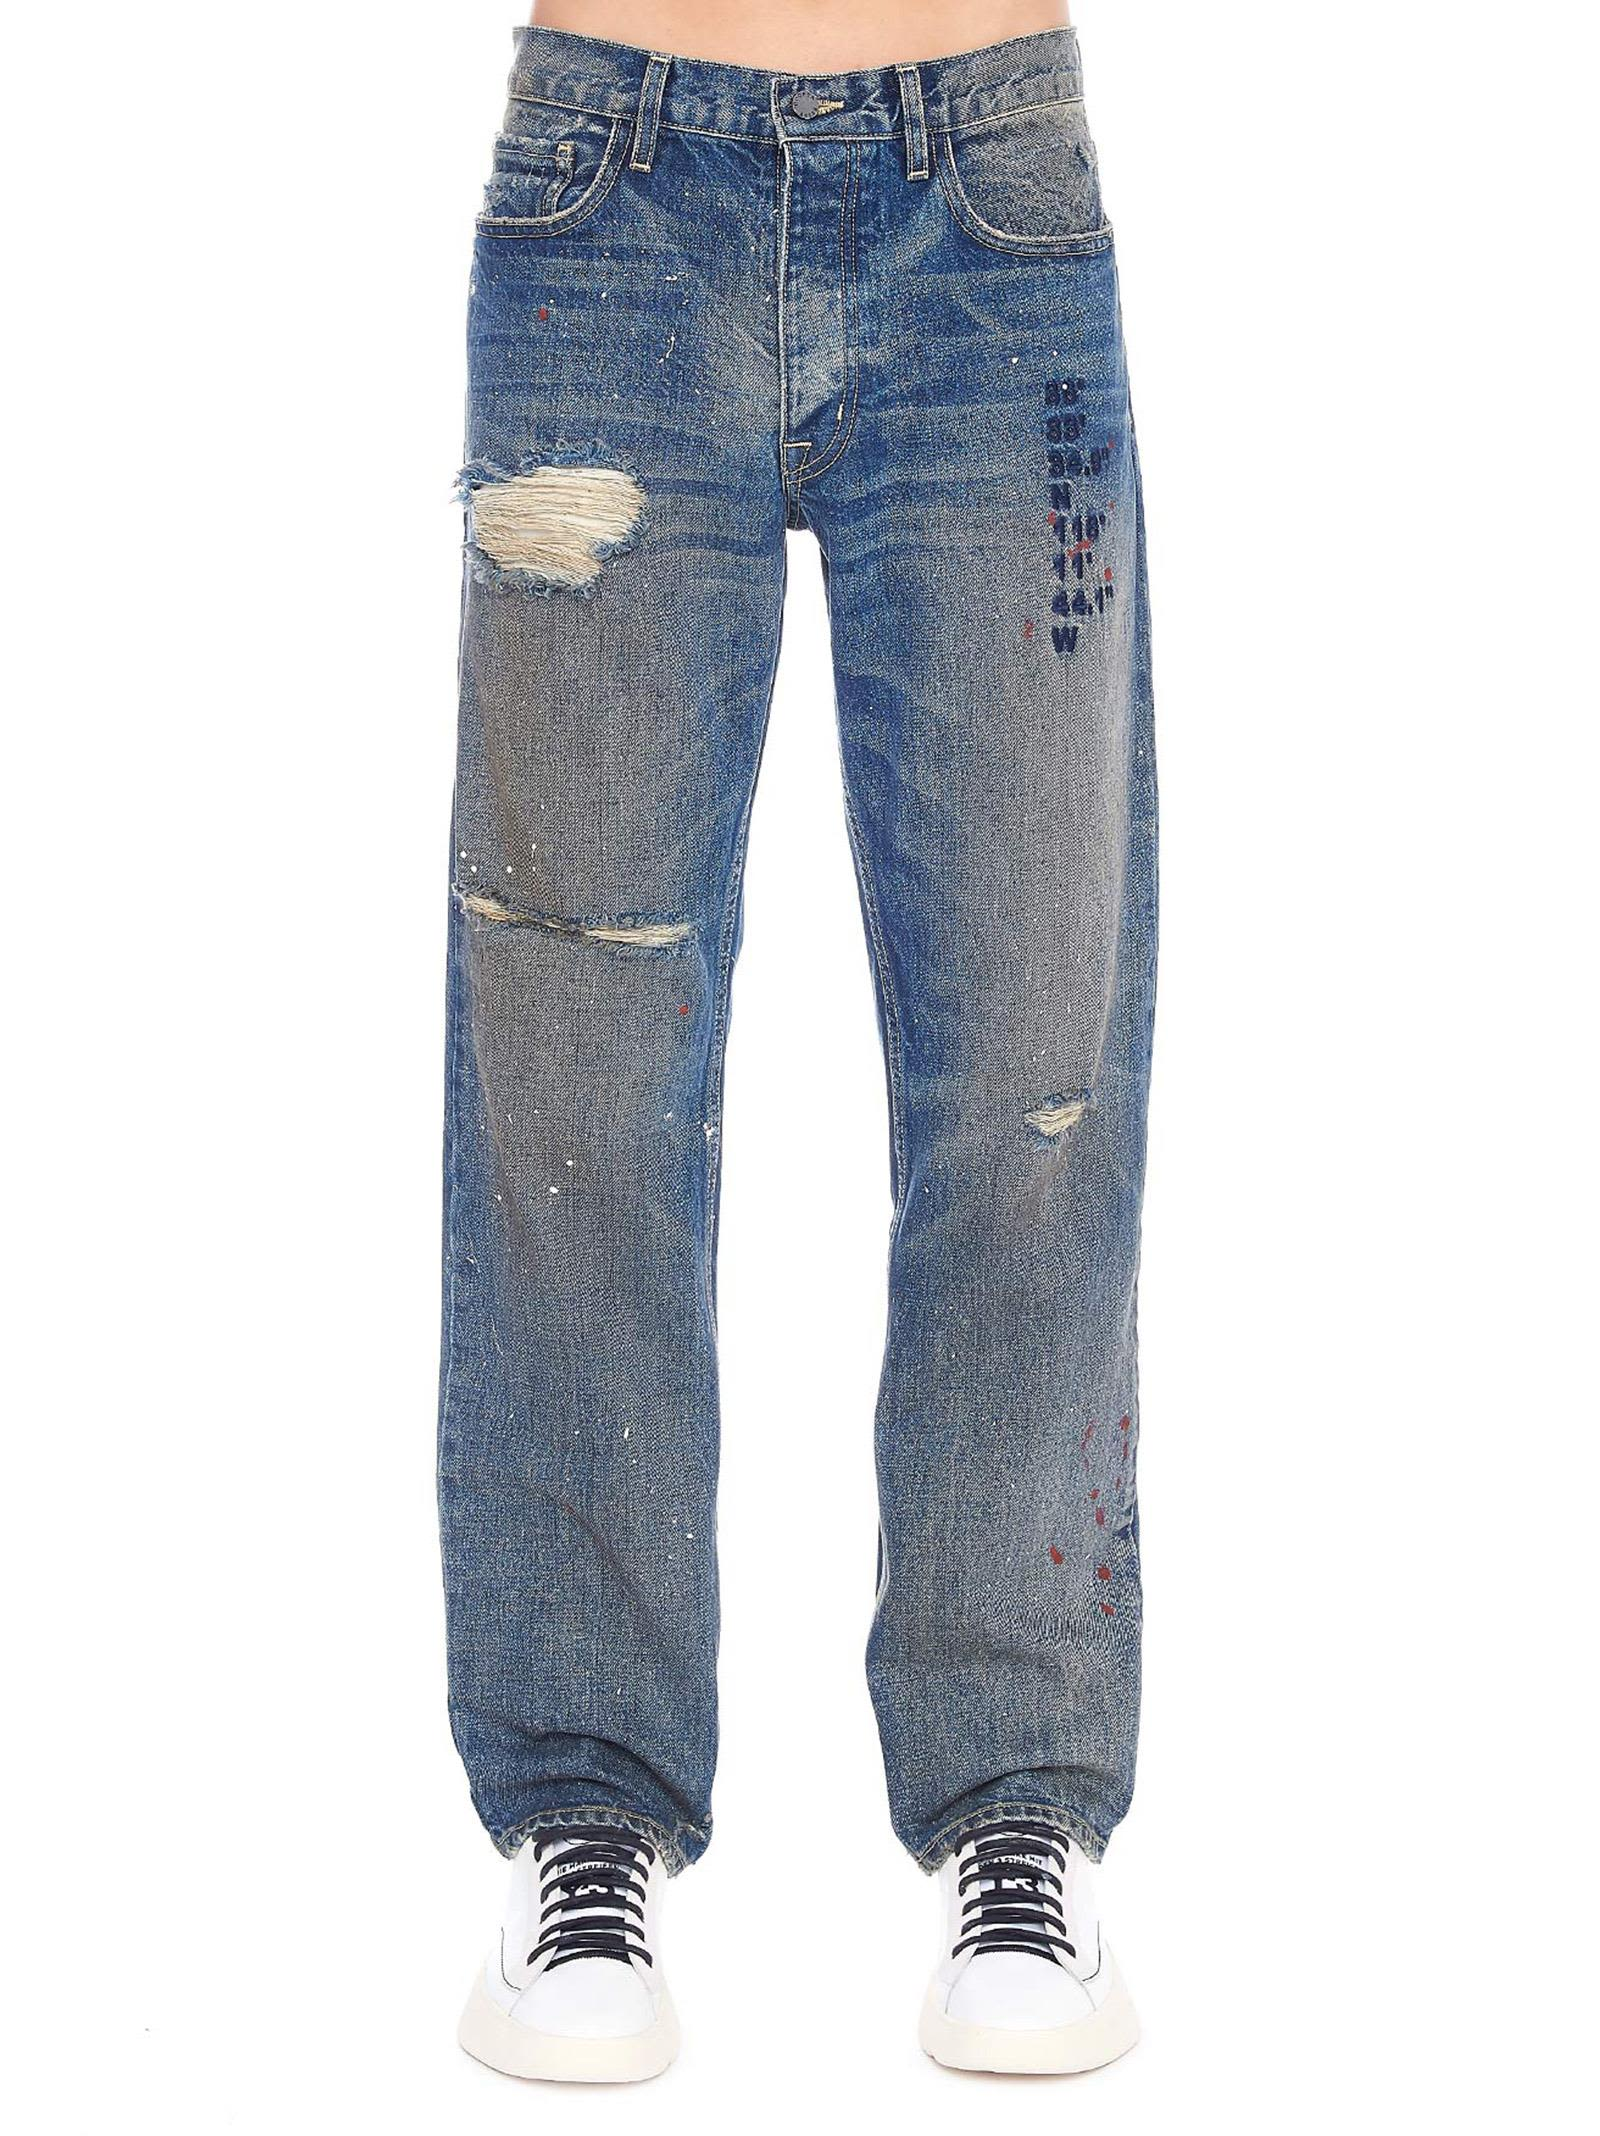 REESE COOPER Jeans in Blue